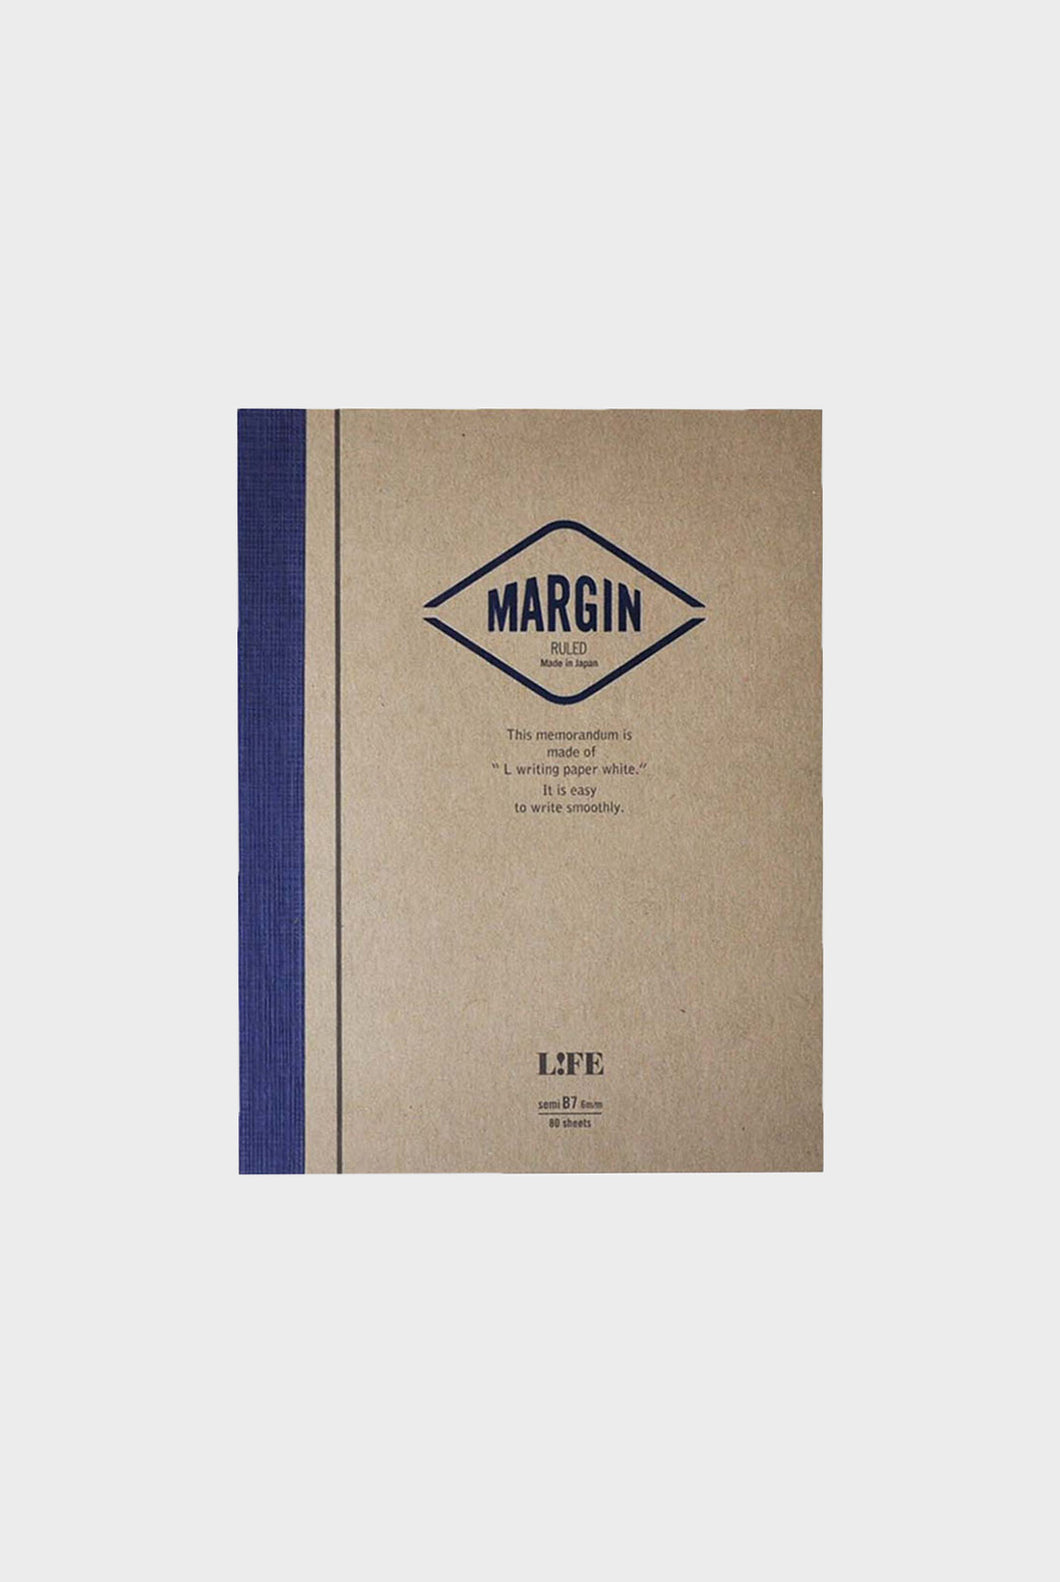 Life Stationery - Margin Memo Notepad - Ruled - B7 (9x12.5cm) - Kraft & Red